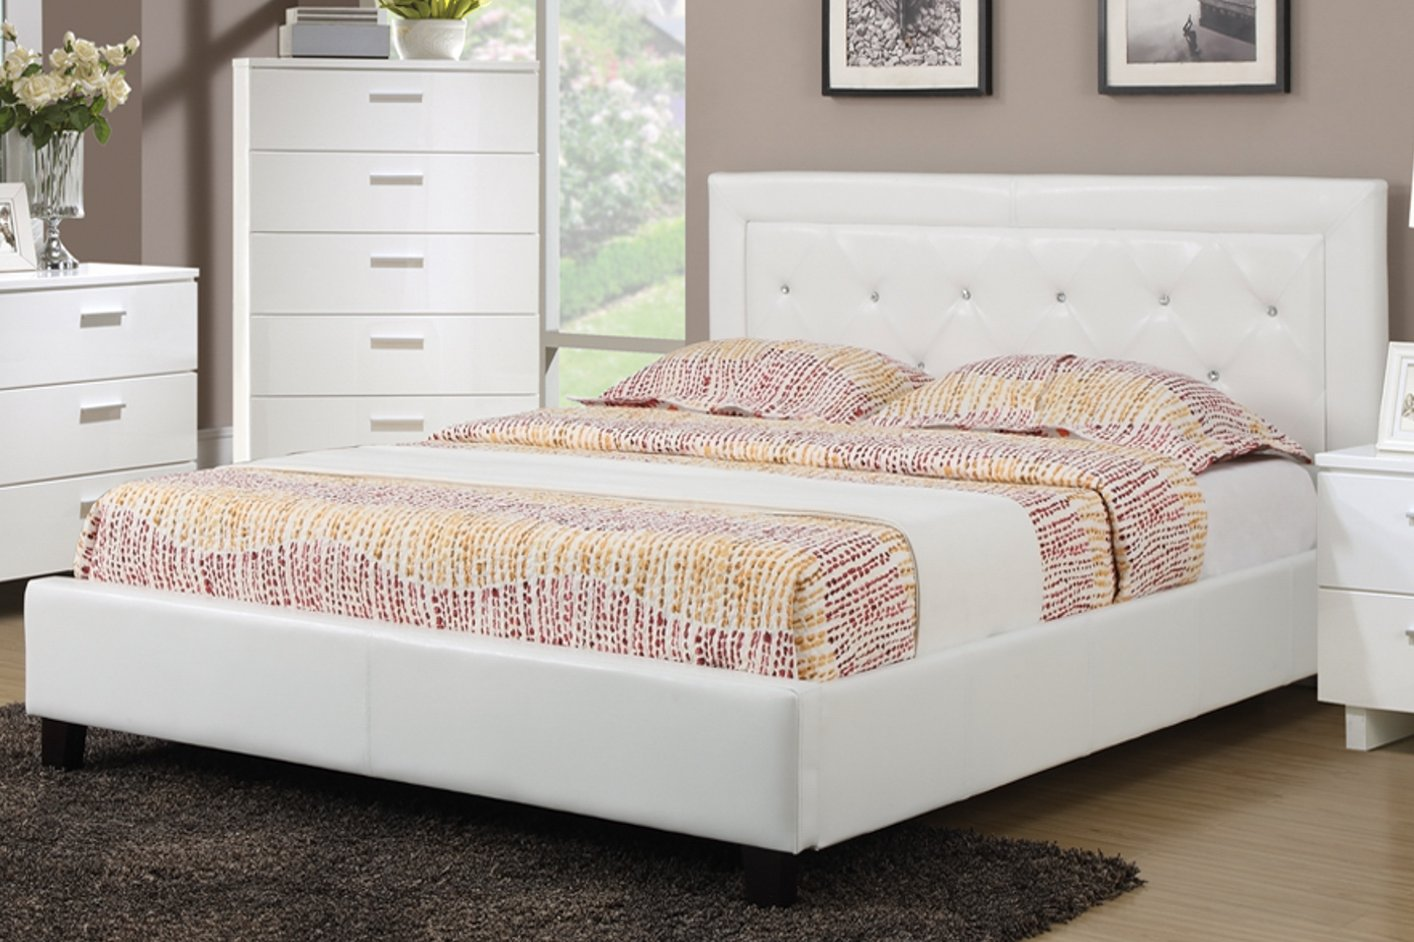 A bed frame is a type of furniture used for supporting a mattress. One of its many different sizes is the full size bed frame. To improve our knowledge on this room furniture, it is good to know the standard dimensions of a full size bed.